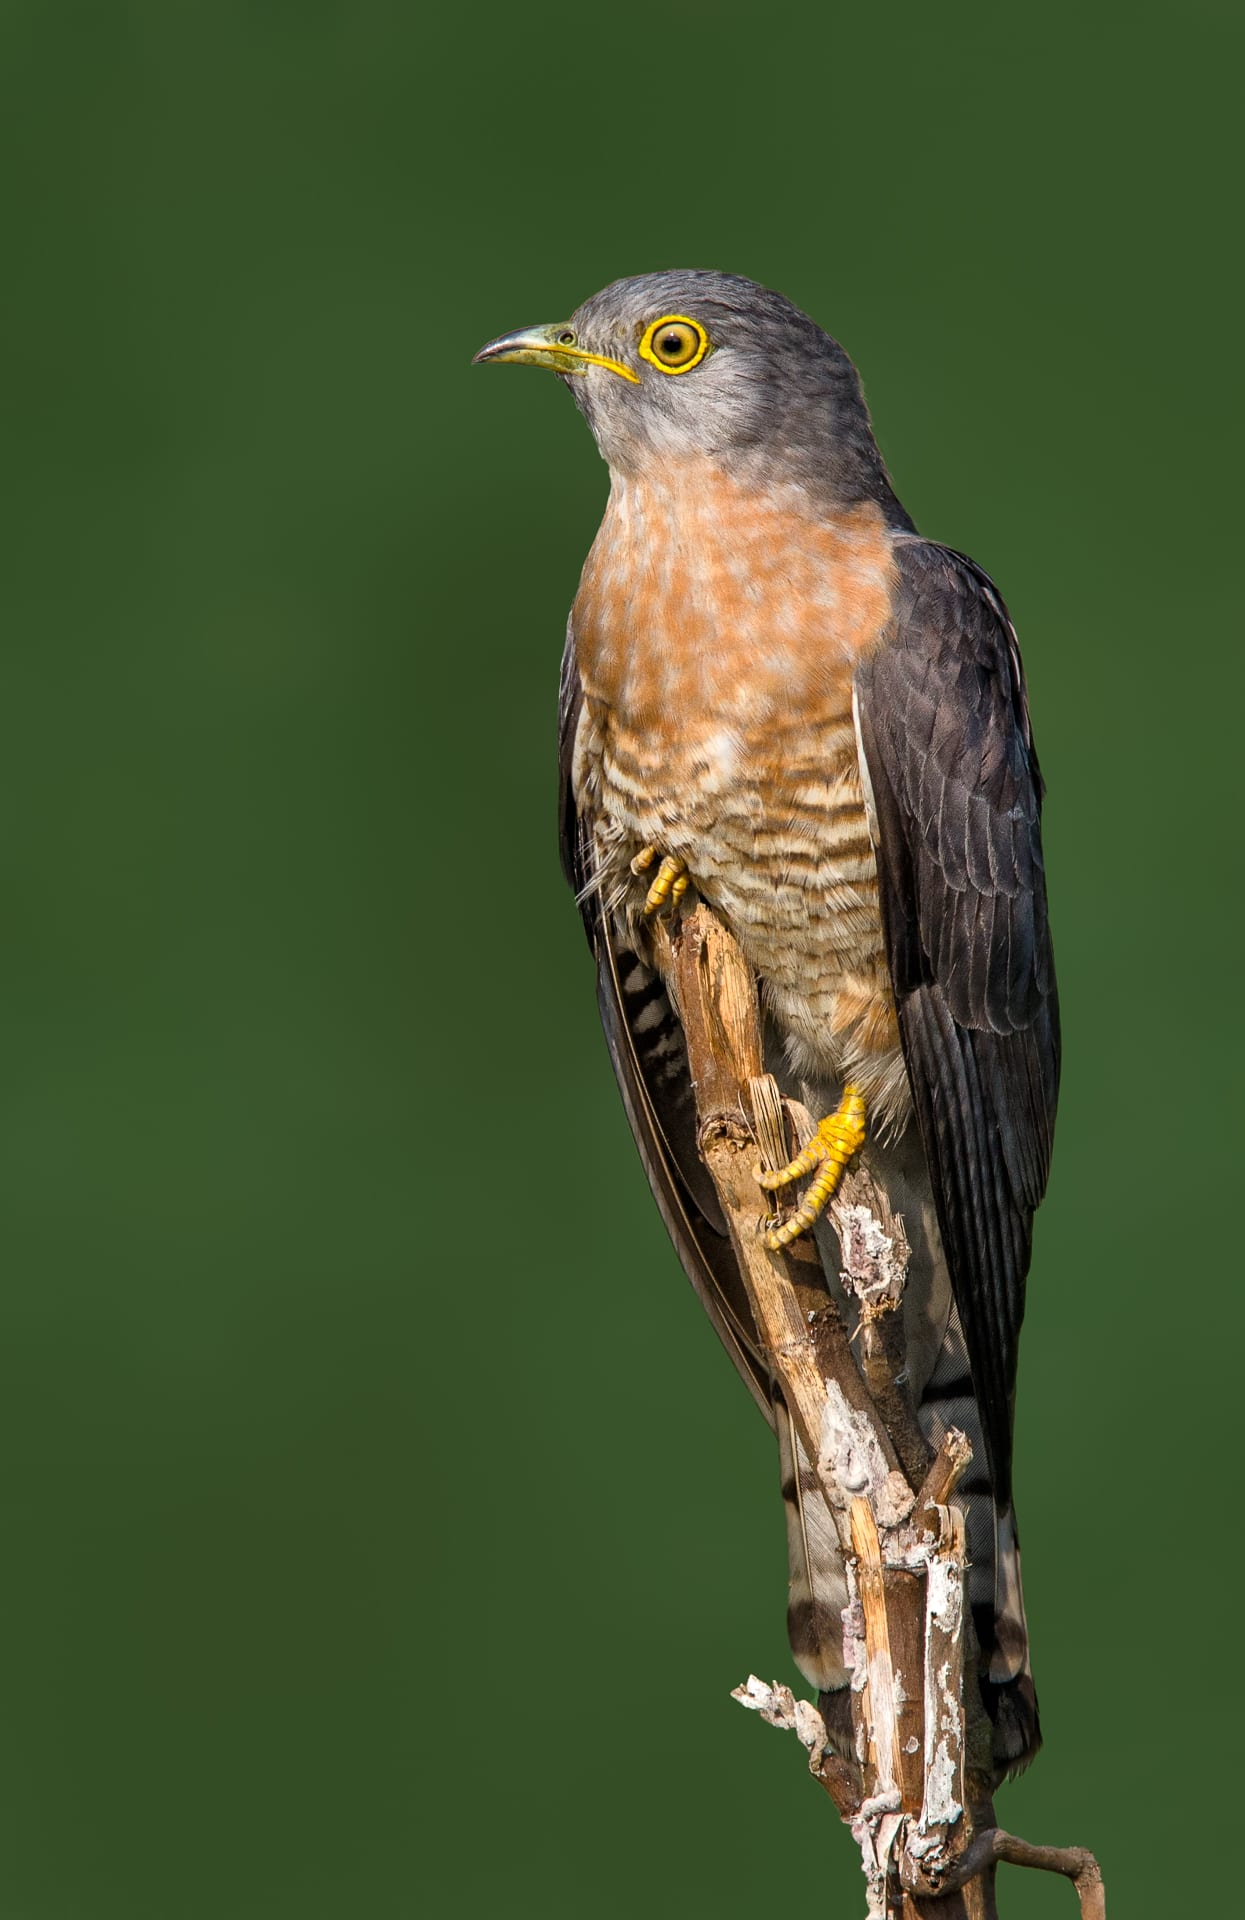 The common hawk-cuckoo's plumage resembles that of the shikra (right), a bird of prey.